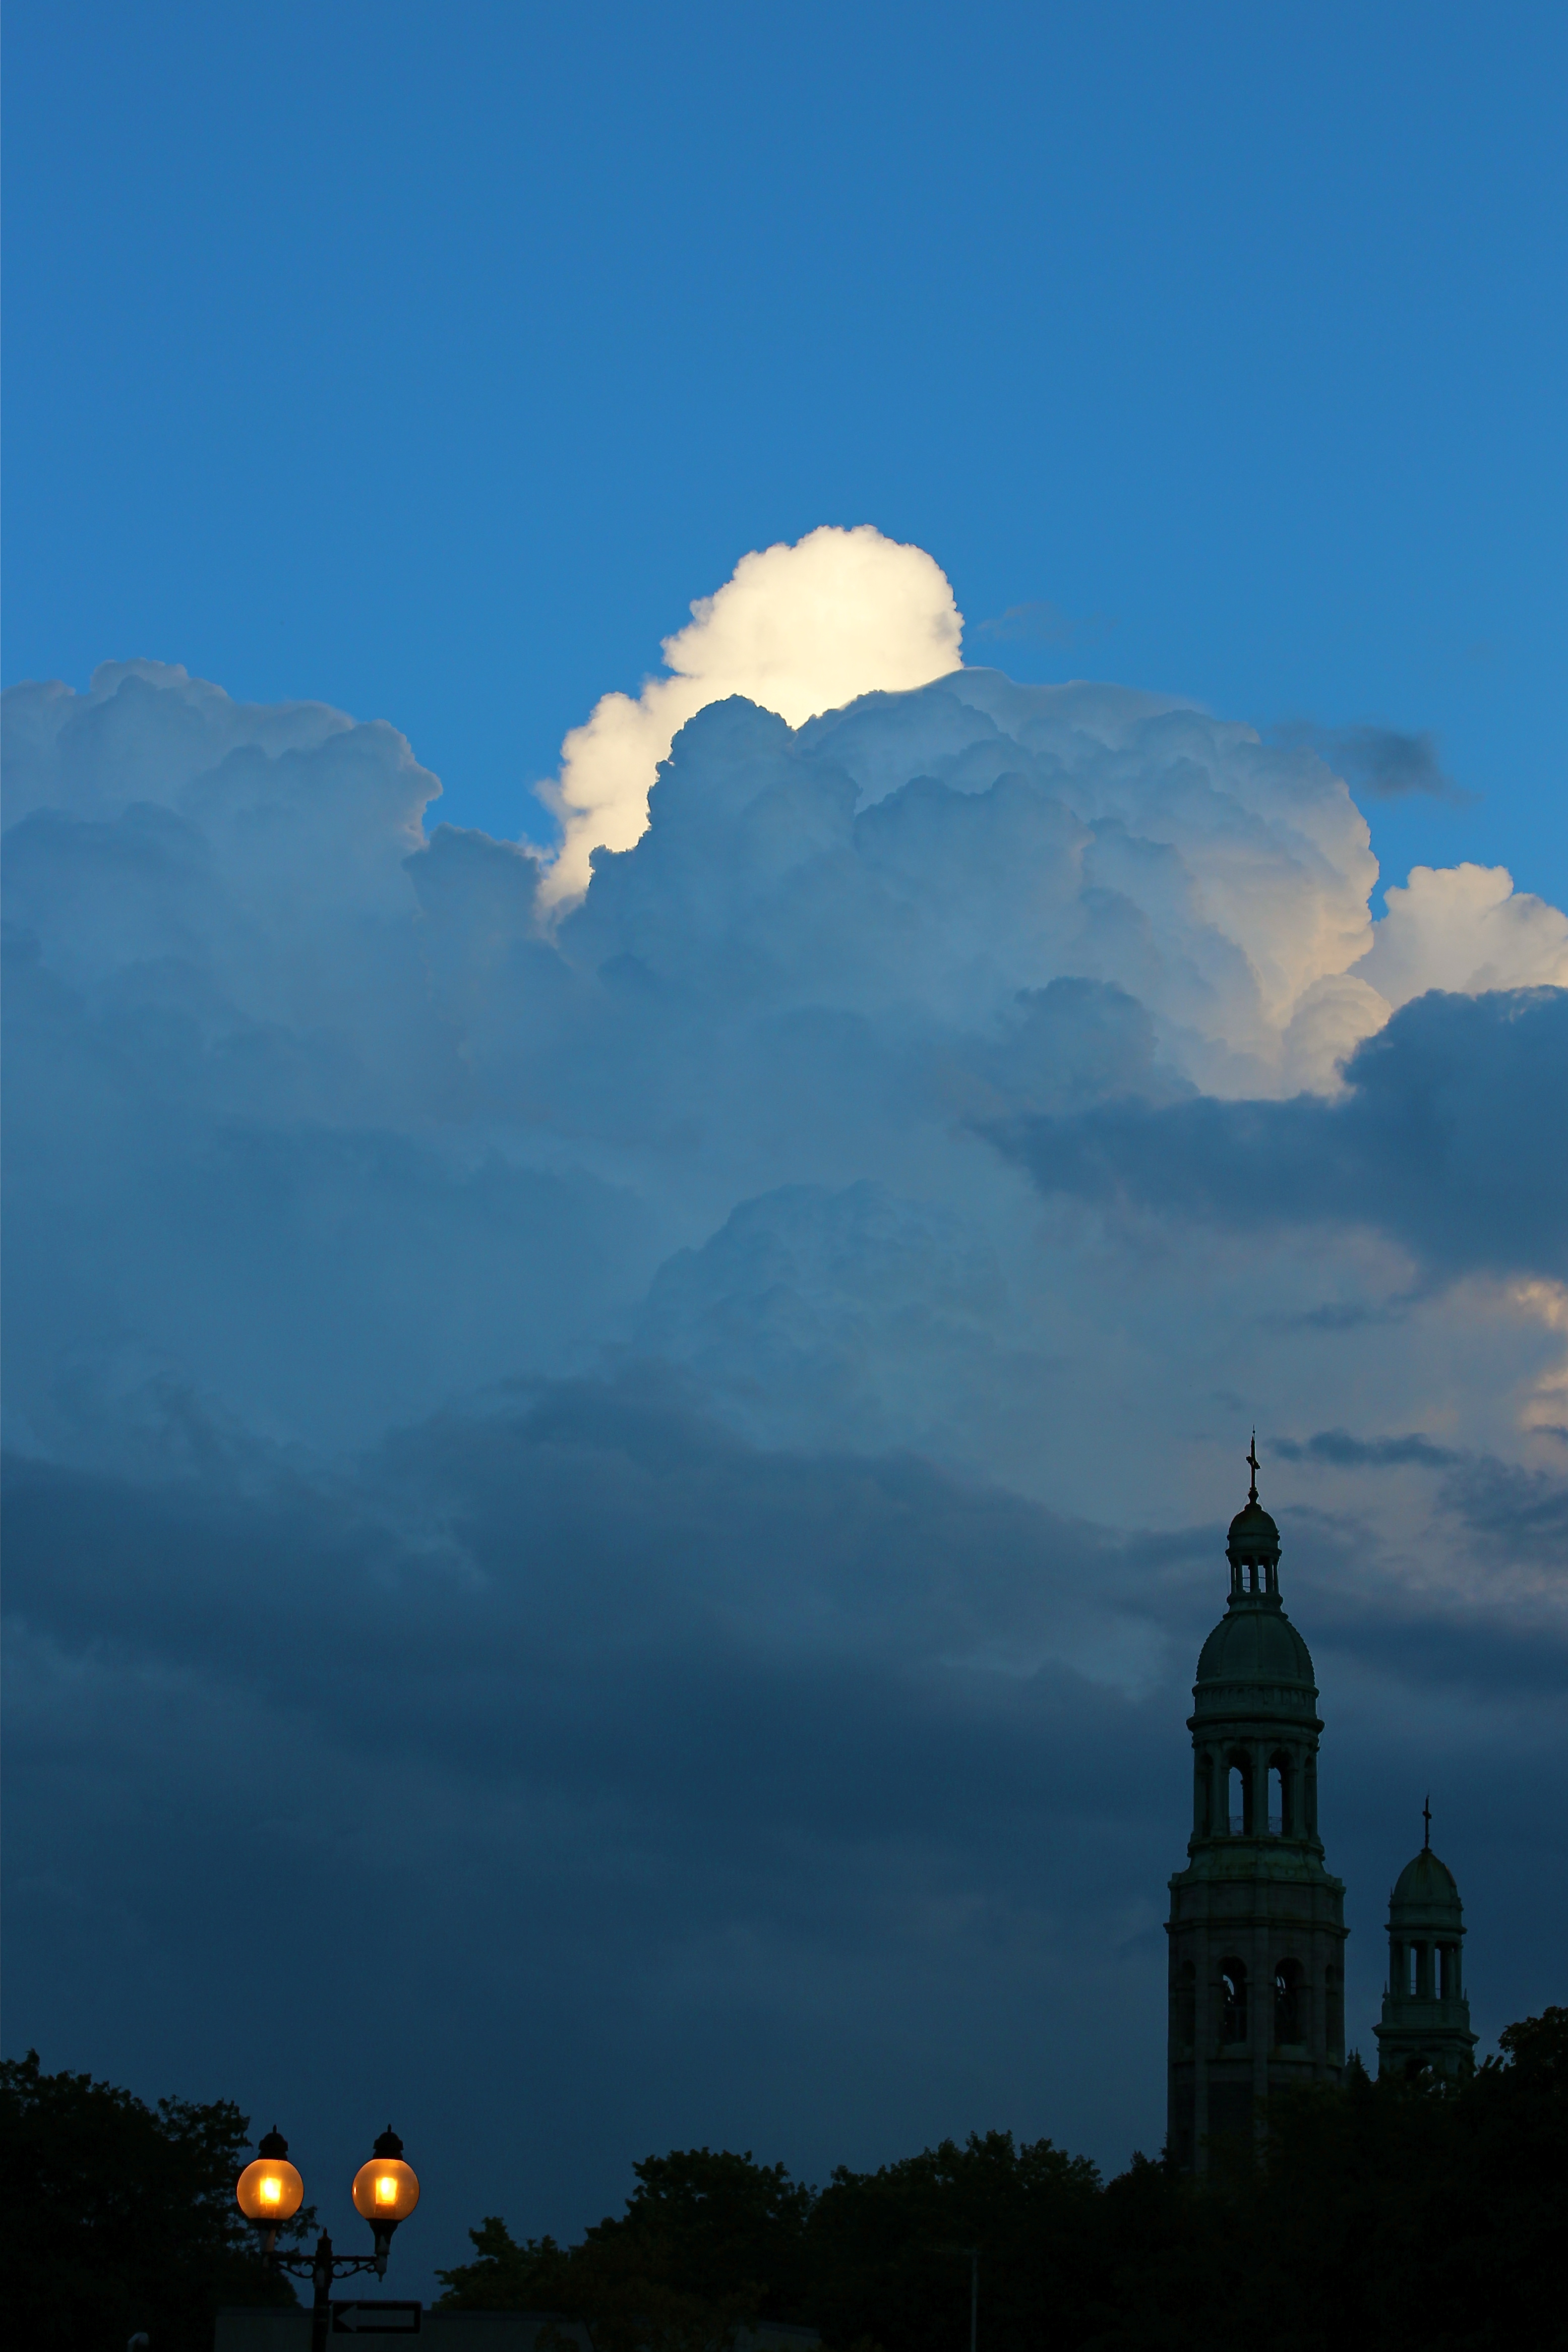 Clouds over Saint Henri - Summer 2013